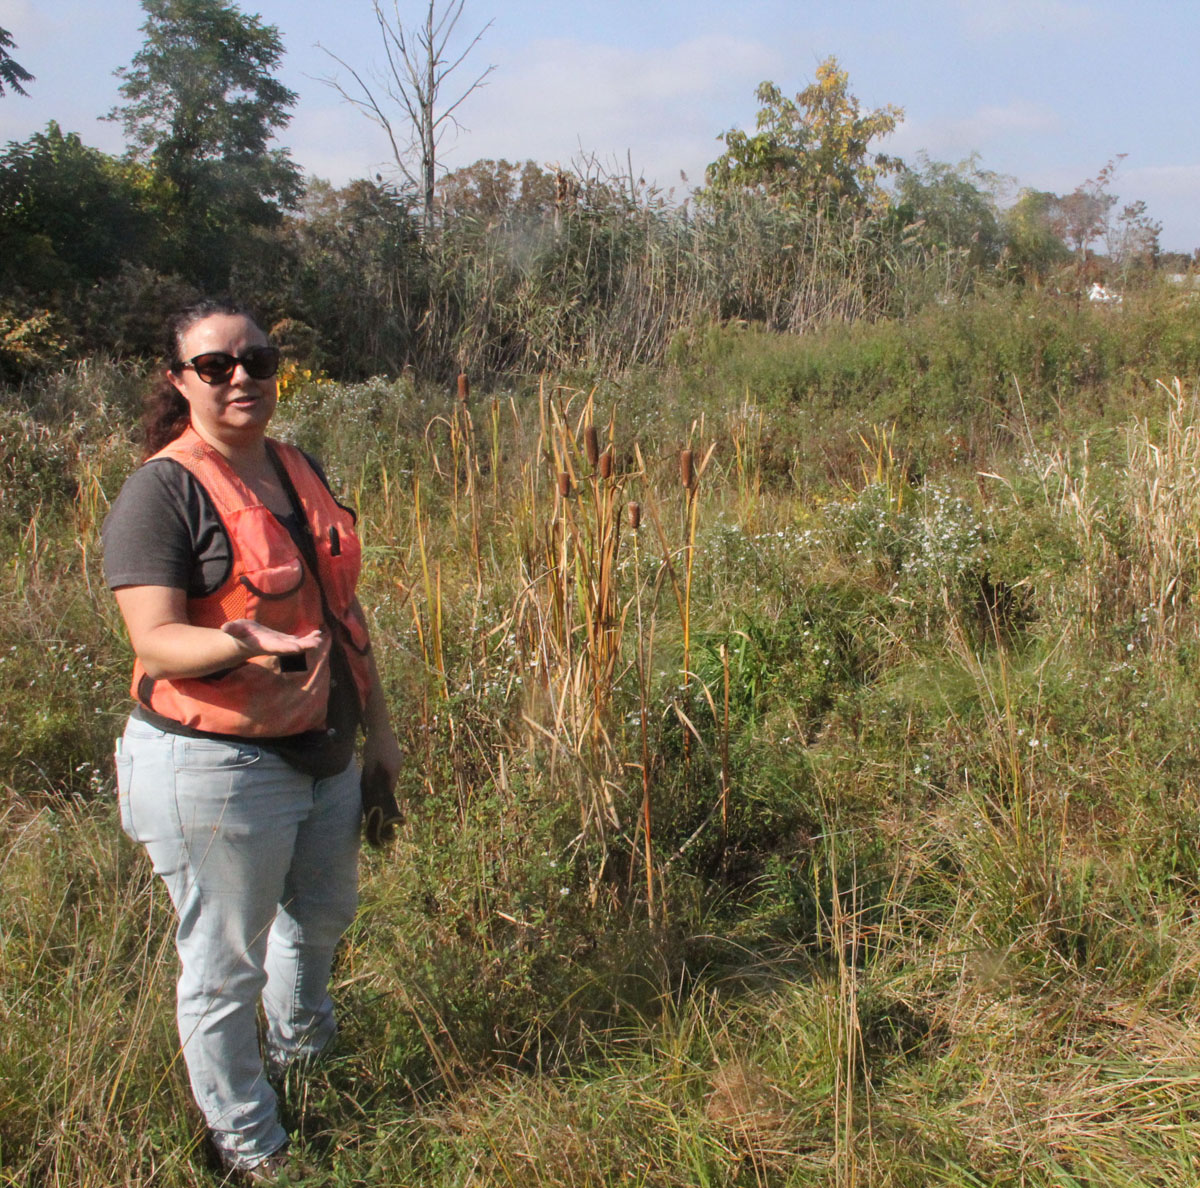 Walker describes how wetland species such as the cattails beside her have spontaneously begun to recolonize some of the former home sites in the West Haven neighborhood.